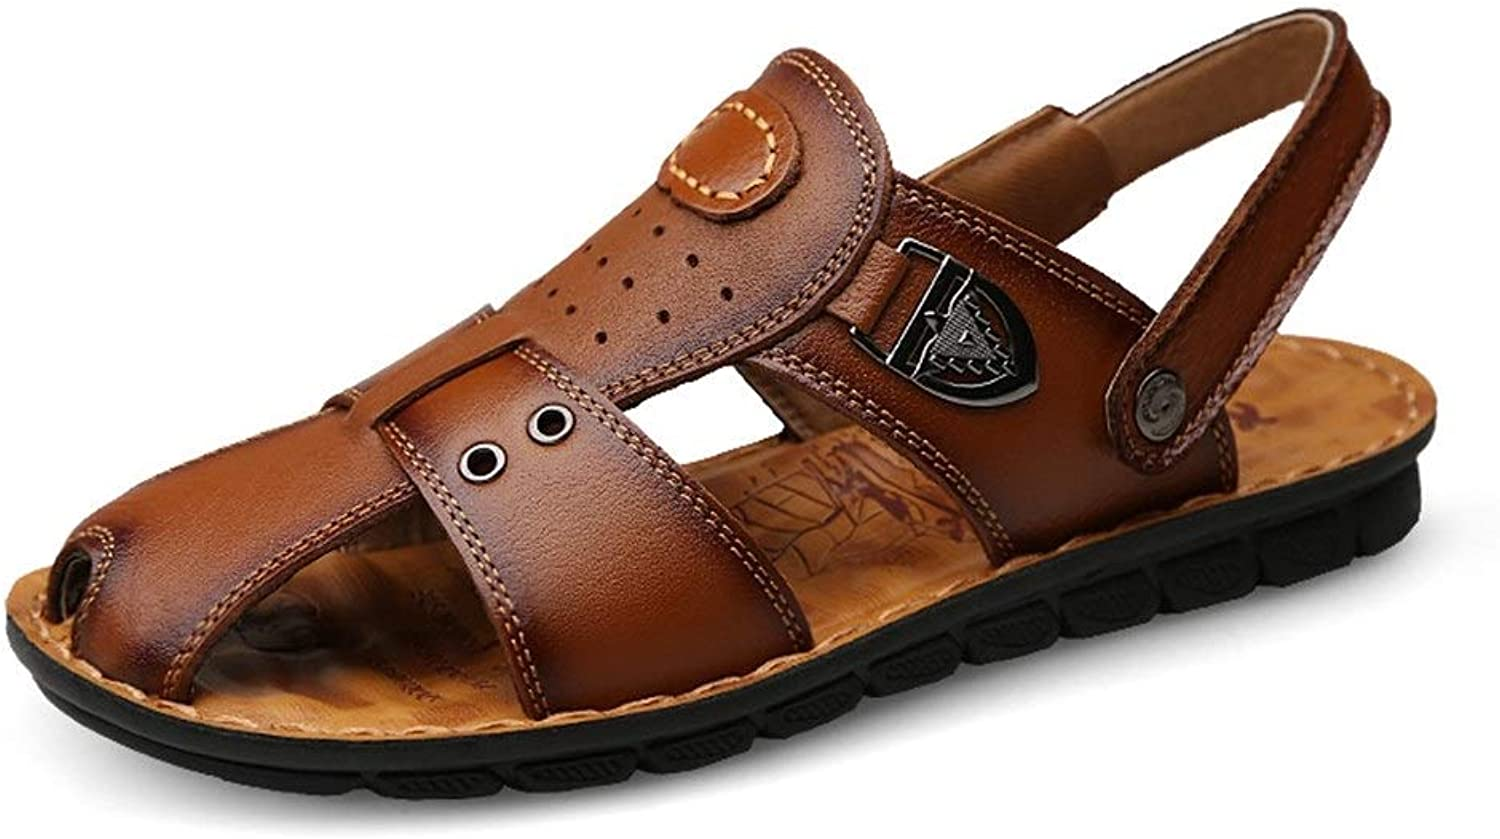 RONGLINGXING Fashion Summer Beach Leisure Slippers For Men Genuine Leather Perforated Breathable Outdoor Sandals Vegan Anti-slip Flat Round Close Toe Buckle Waterproof